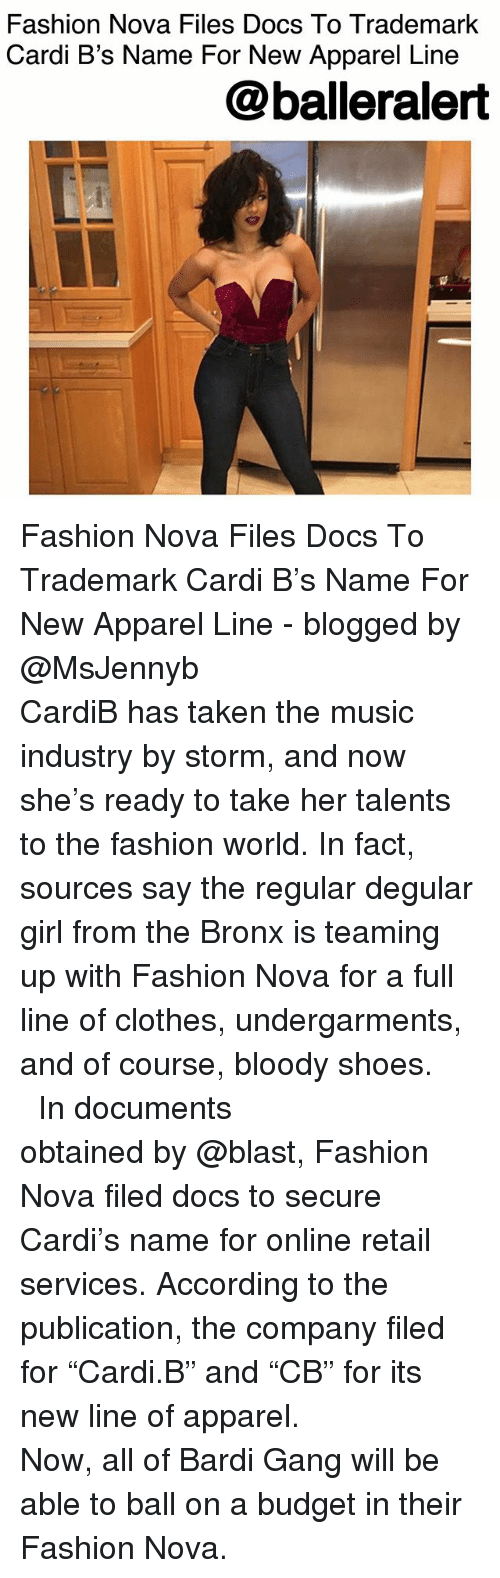 """Clothes, Fashion, and Memes: Fashion Nova Files Docs To Trademark  Cardi B's Name For New Apparel Line  @balleralert Fashion Nova Files Docs To Trademark Cardi B's Name For New Apparel Line - blogged by @MsJennyb ⠀⠀⠀⠀⠀⠀⠀⠀⠀ ⠀⠀⠀⠀⠀⠀⠀⠀⠀ CardiB has taken the music industry by storm, and now she's ready to take her talents to the fashion world. In fact, sources say the regular degular girl from the Bronx is teaming up with Fashion Nova for a full line of clothes, undergarments, and of course, bloody shoes. ⠀⠀⠀⠀⠀⠀⠀⠀⠀ ⠀⠀⠀⠀⠀⠀⠀⠀⠀ In documents obtained by @blast, Fashion Nova filed docs to secure Cardi's name for online retail services. According to the publication, the company filed for """"Cardi.B"""" and """"CB"""" for its new line of apparel. ⠀⠀⠀⠀⠀⠀⠀⠀⠀ ⠀⠀⠀⠀⠀⠀⠀⠀⠀ Now, all of Bardi Gang will be able to ball on a budget in their Fashion Nova."""